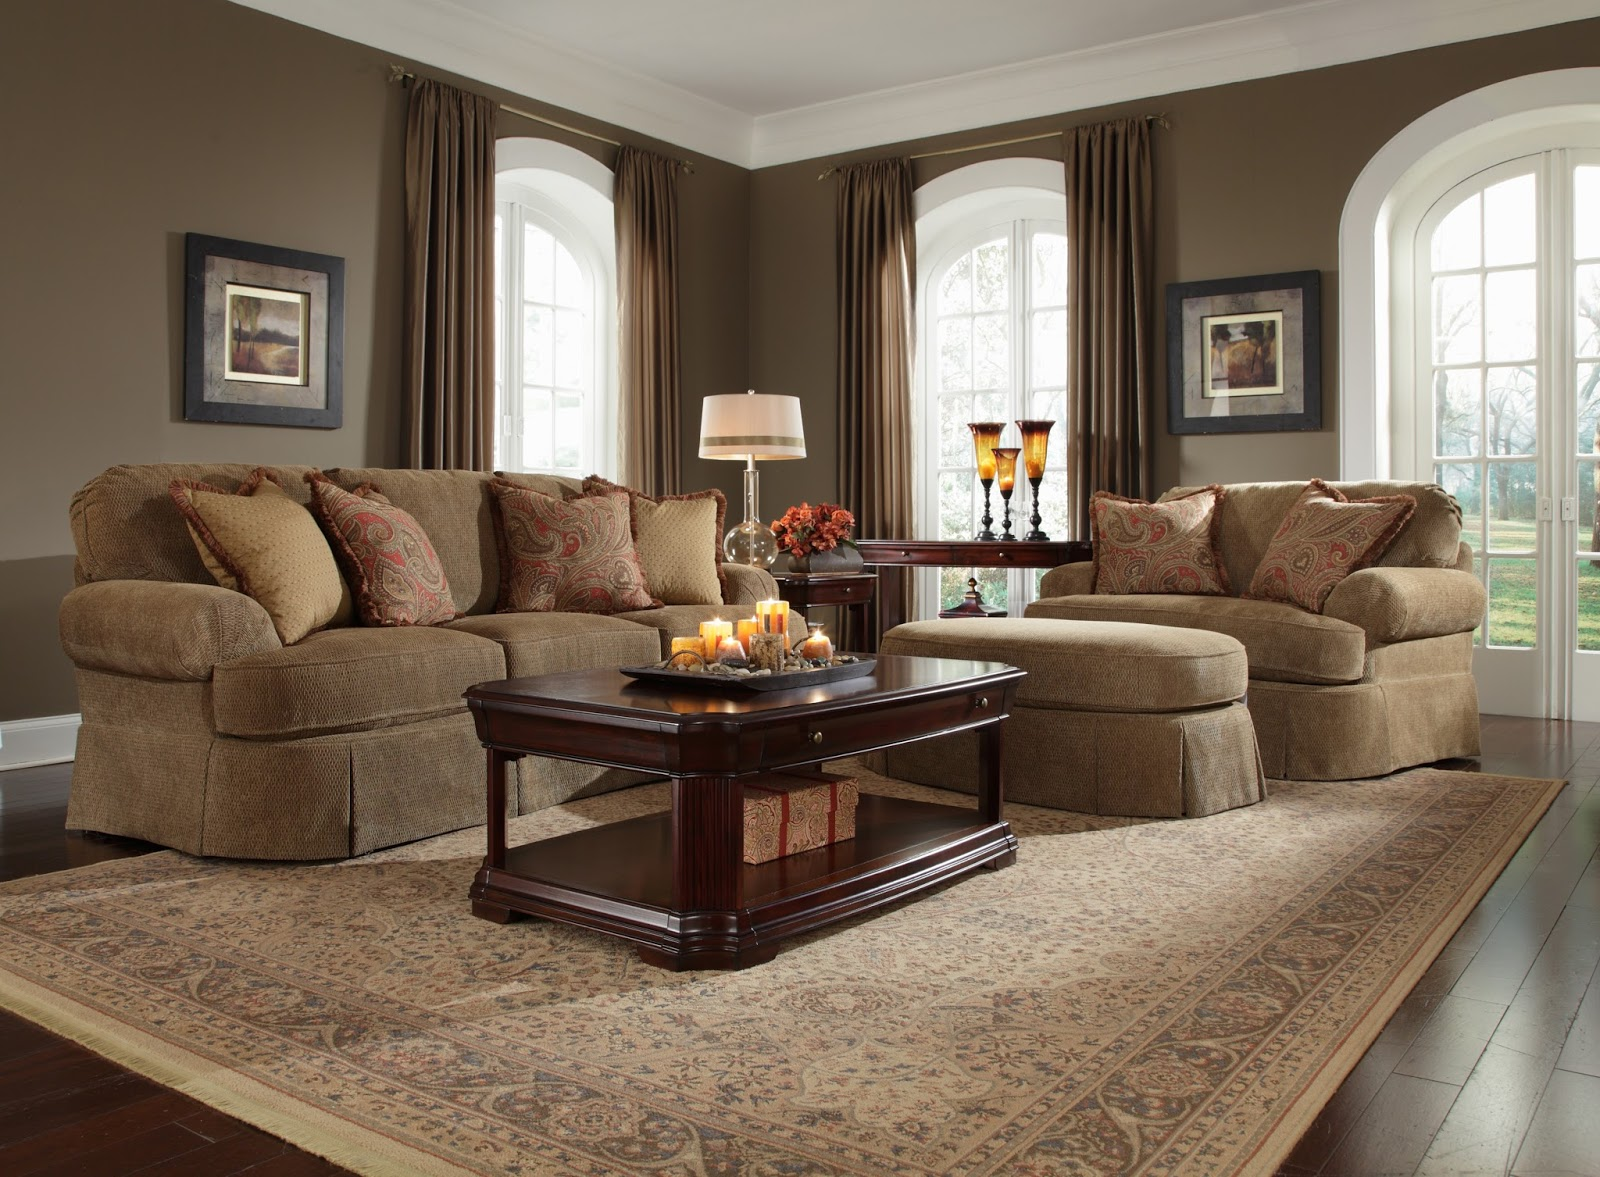 Cheap Living Room Furniture Houston Rooms With Brown Leather The Set